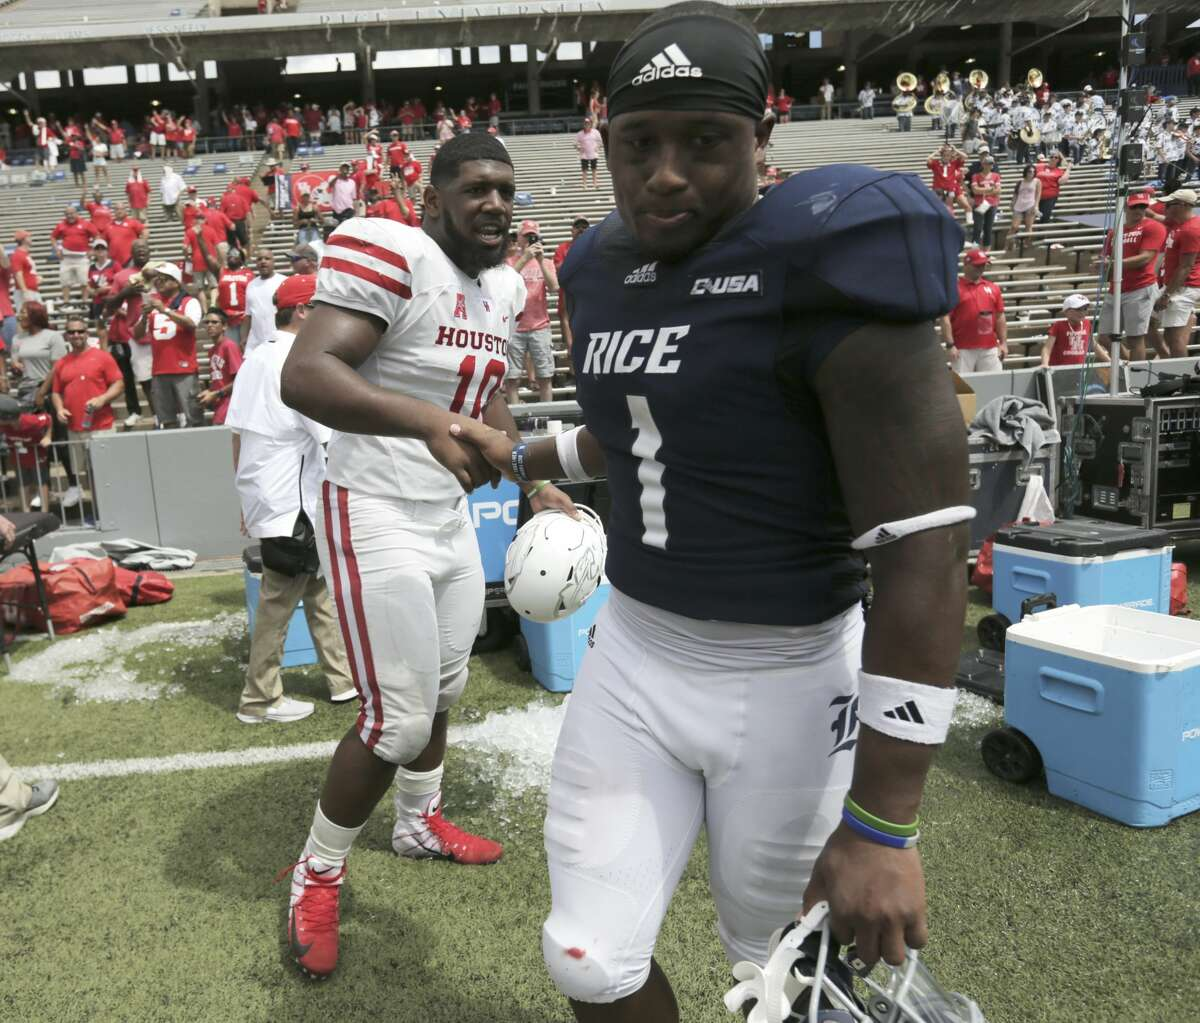 Houston Cougars defensive tackle Ed Oliver (10) shakes hands with Rice Owls running back Aston Walter (1) after Houston's 45-27 win over Rice on Saturday, Sept. 1, 2018 in Houston.